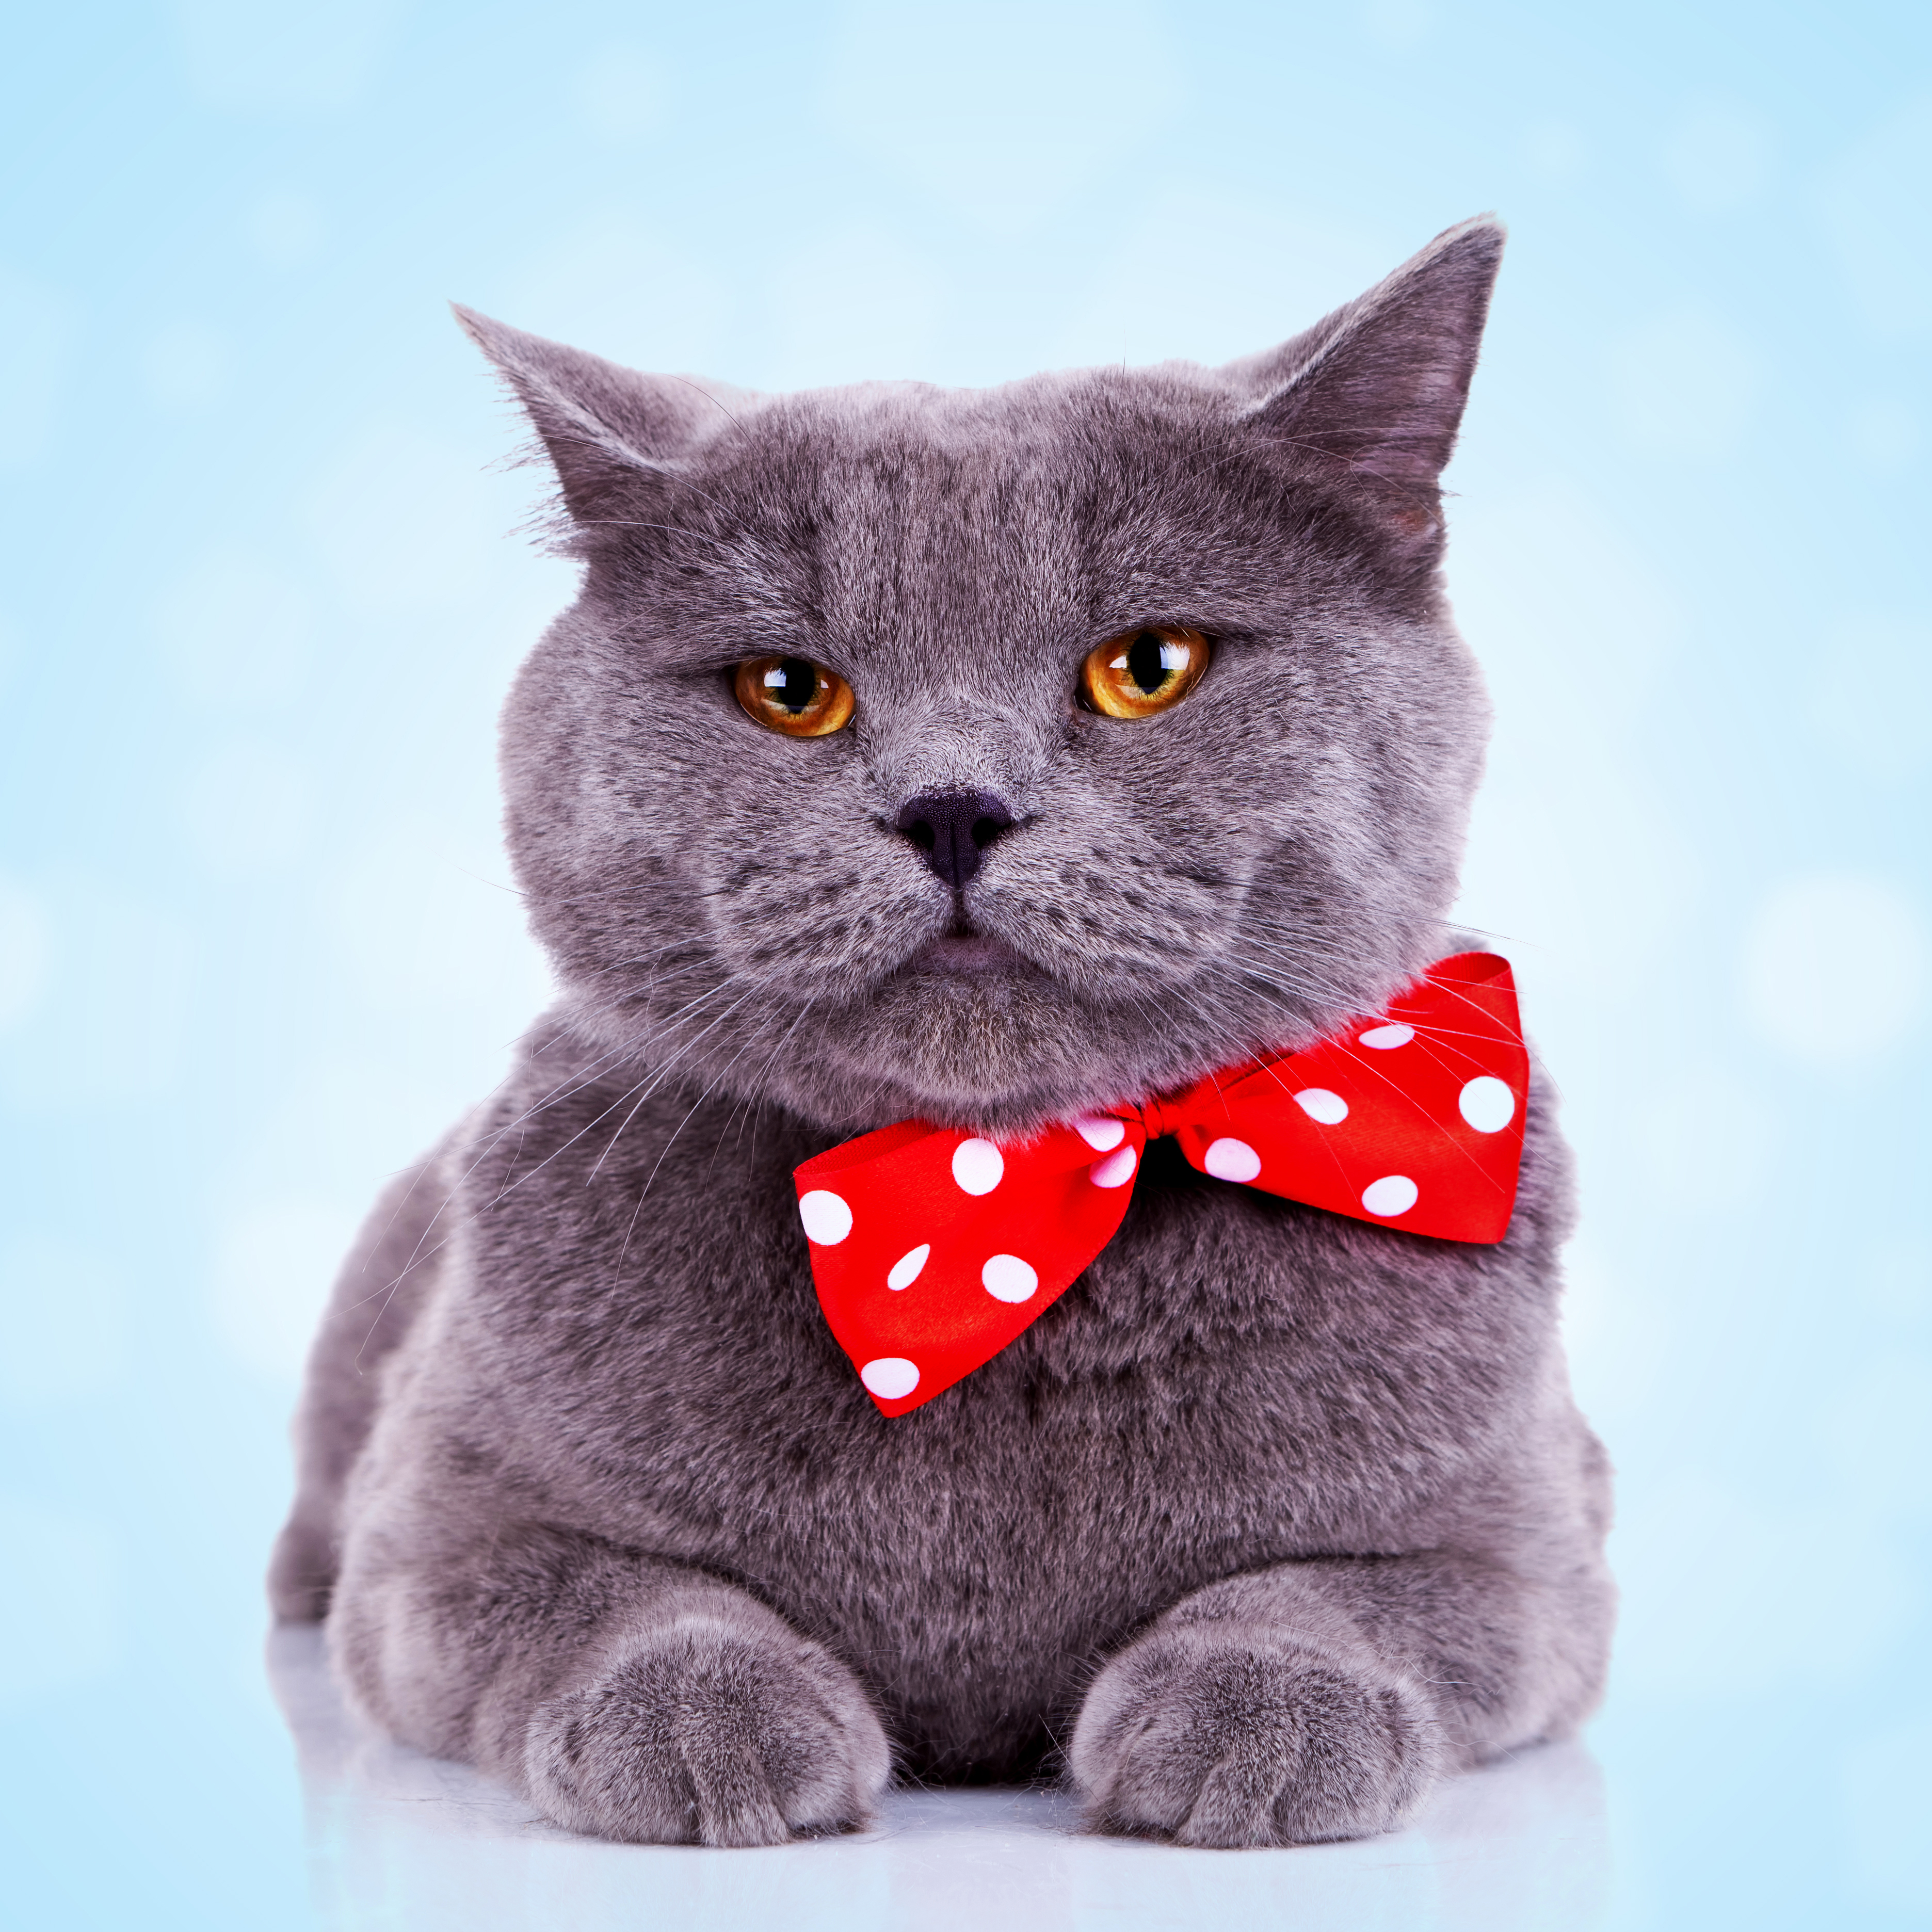 cat with tie